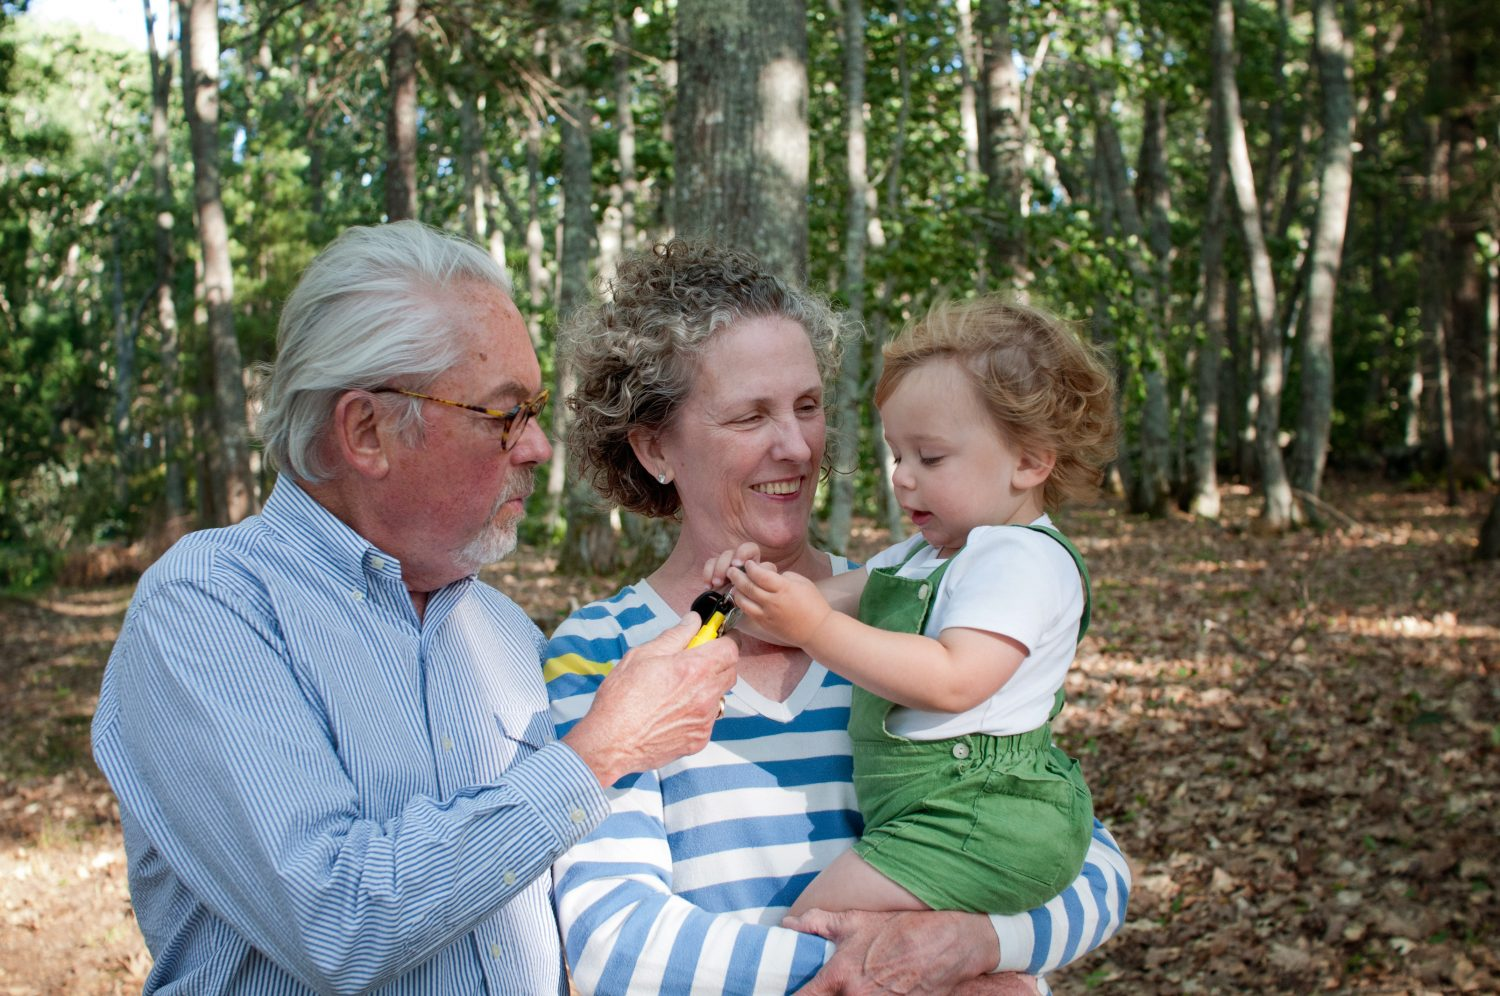 candid photo of grandparents holding toddler boy in the forest